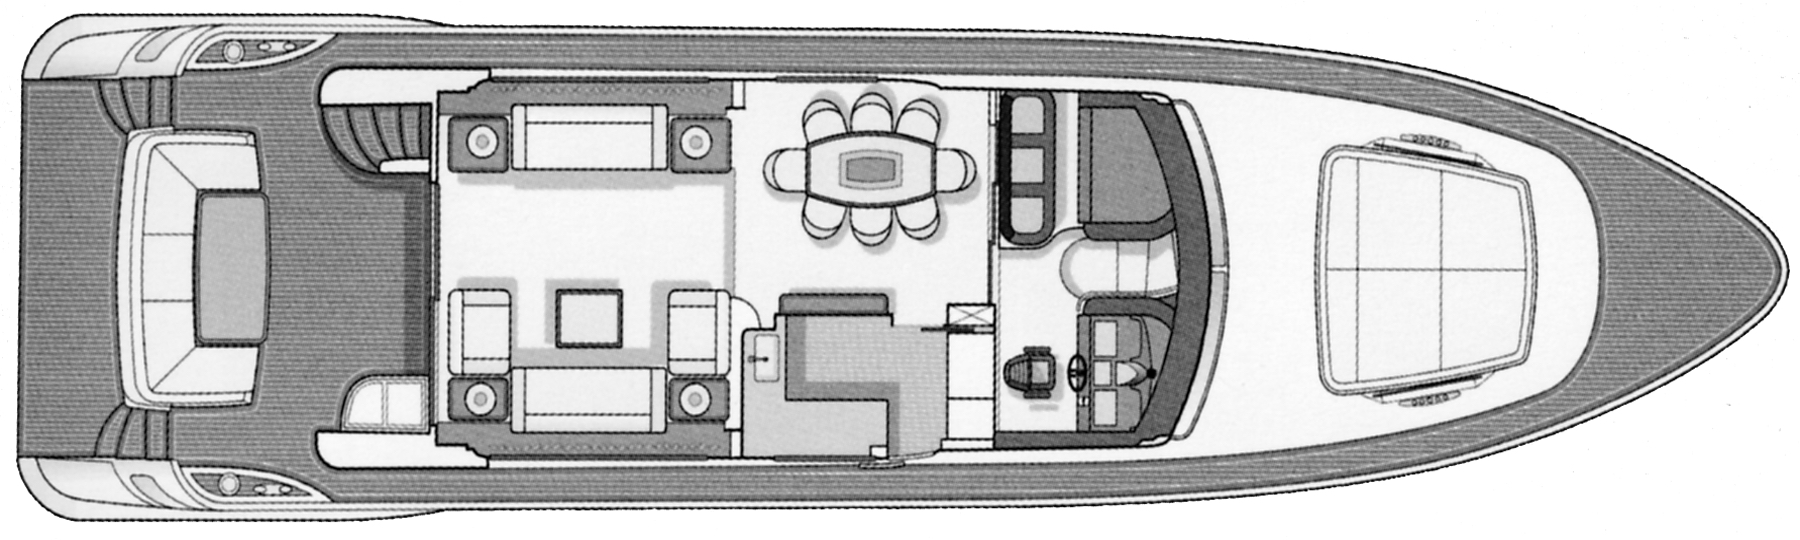 75 Flybridge Floor Plan 2